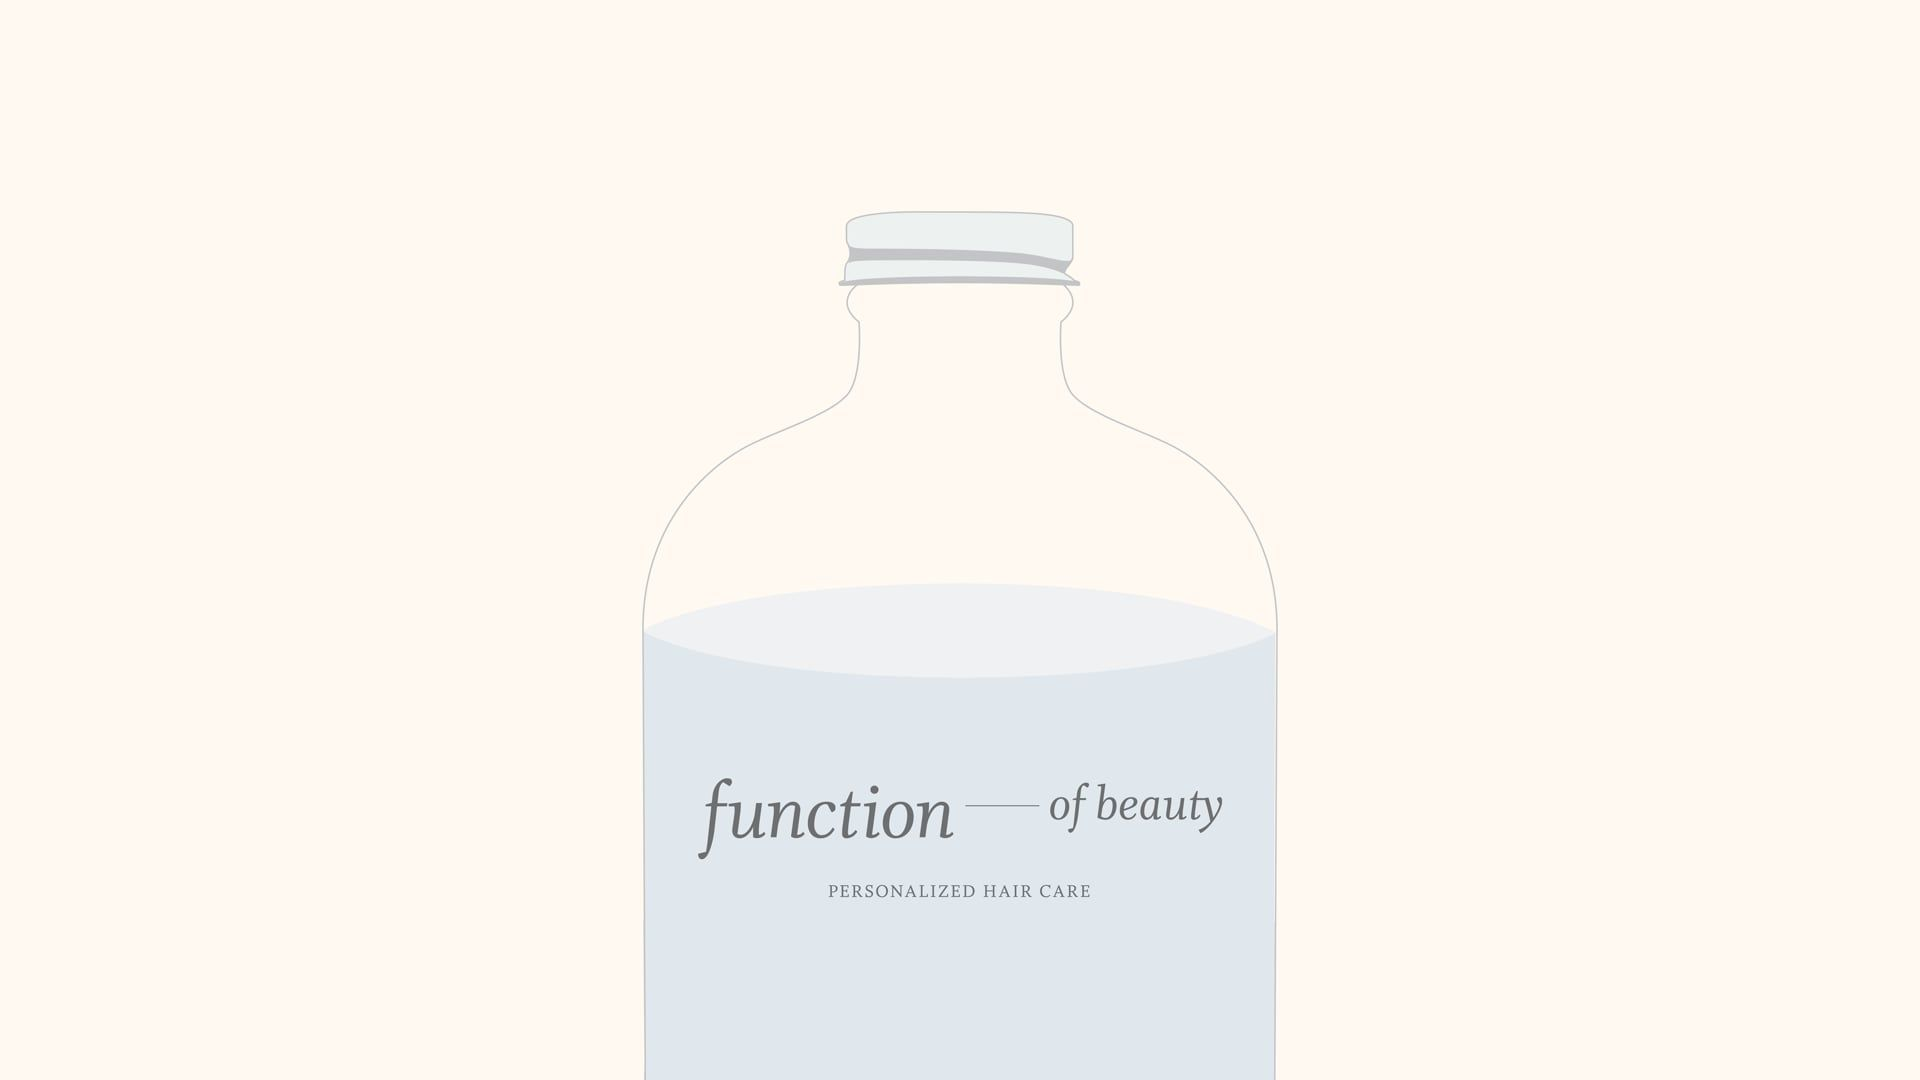 Function of Beauty: Personalized Hair Care (www.functionofbeauty.com)